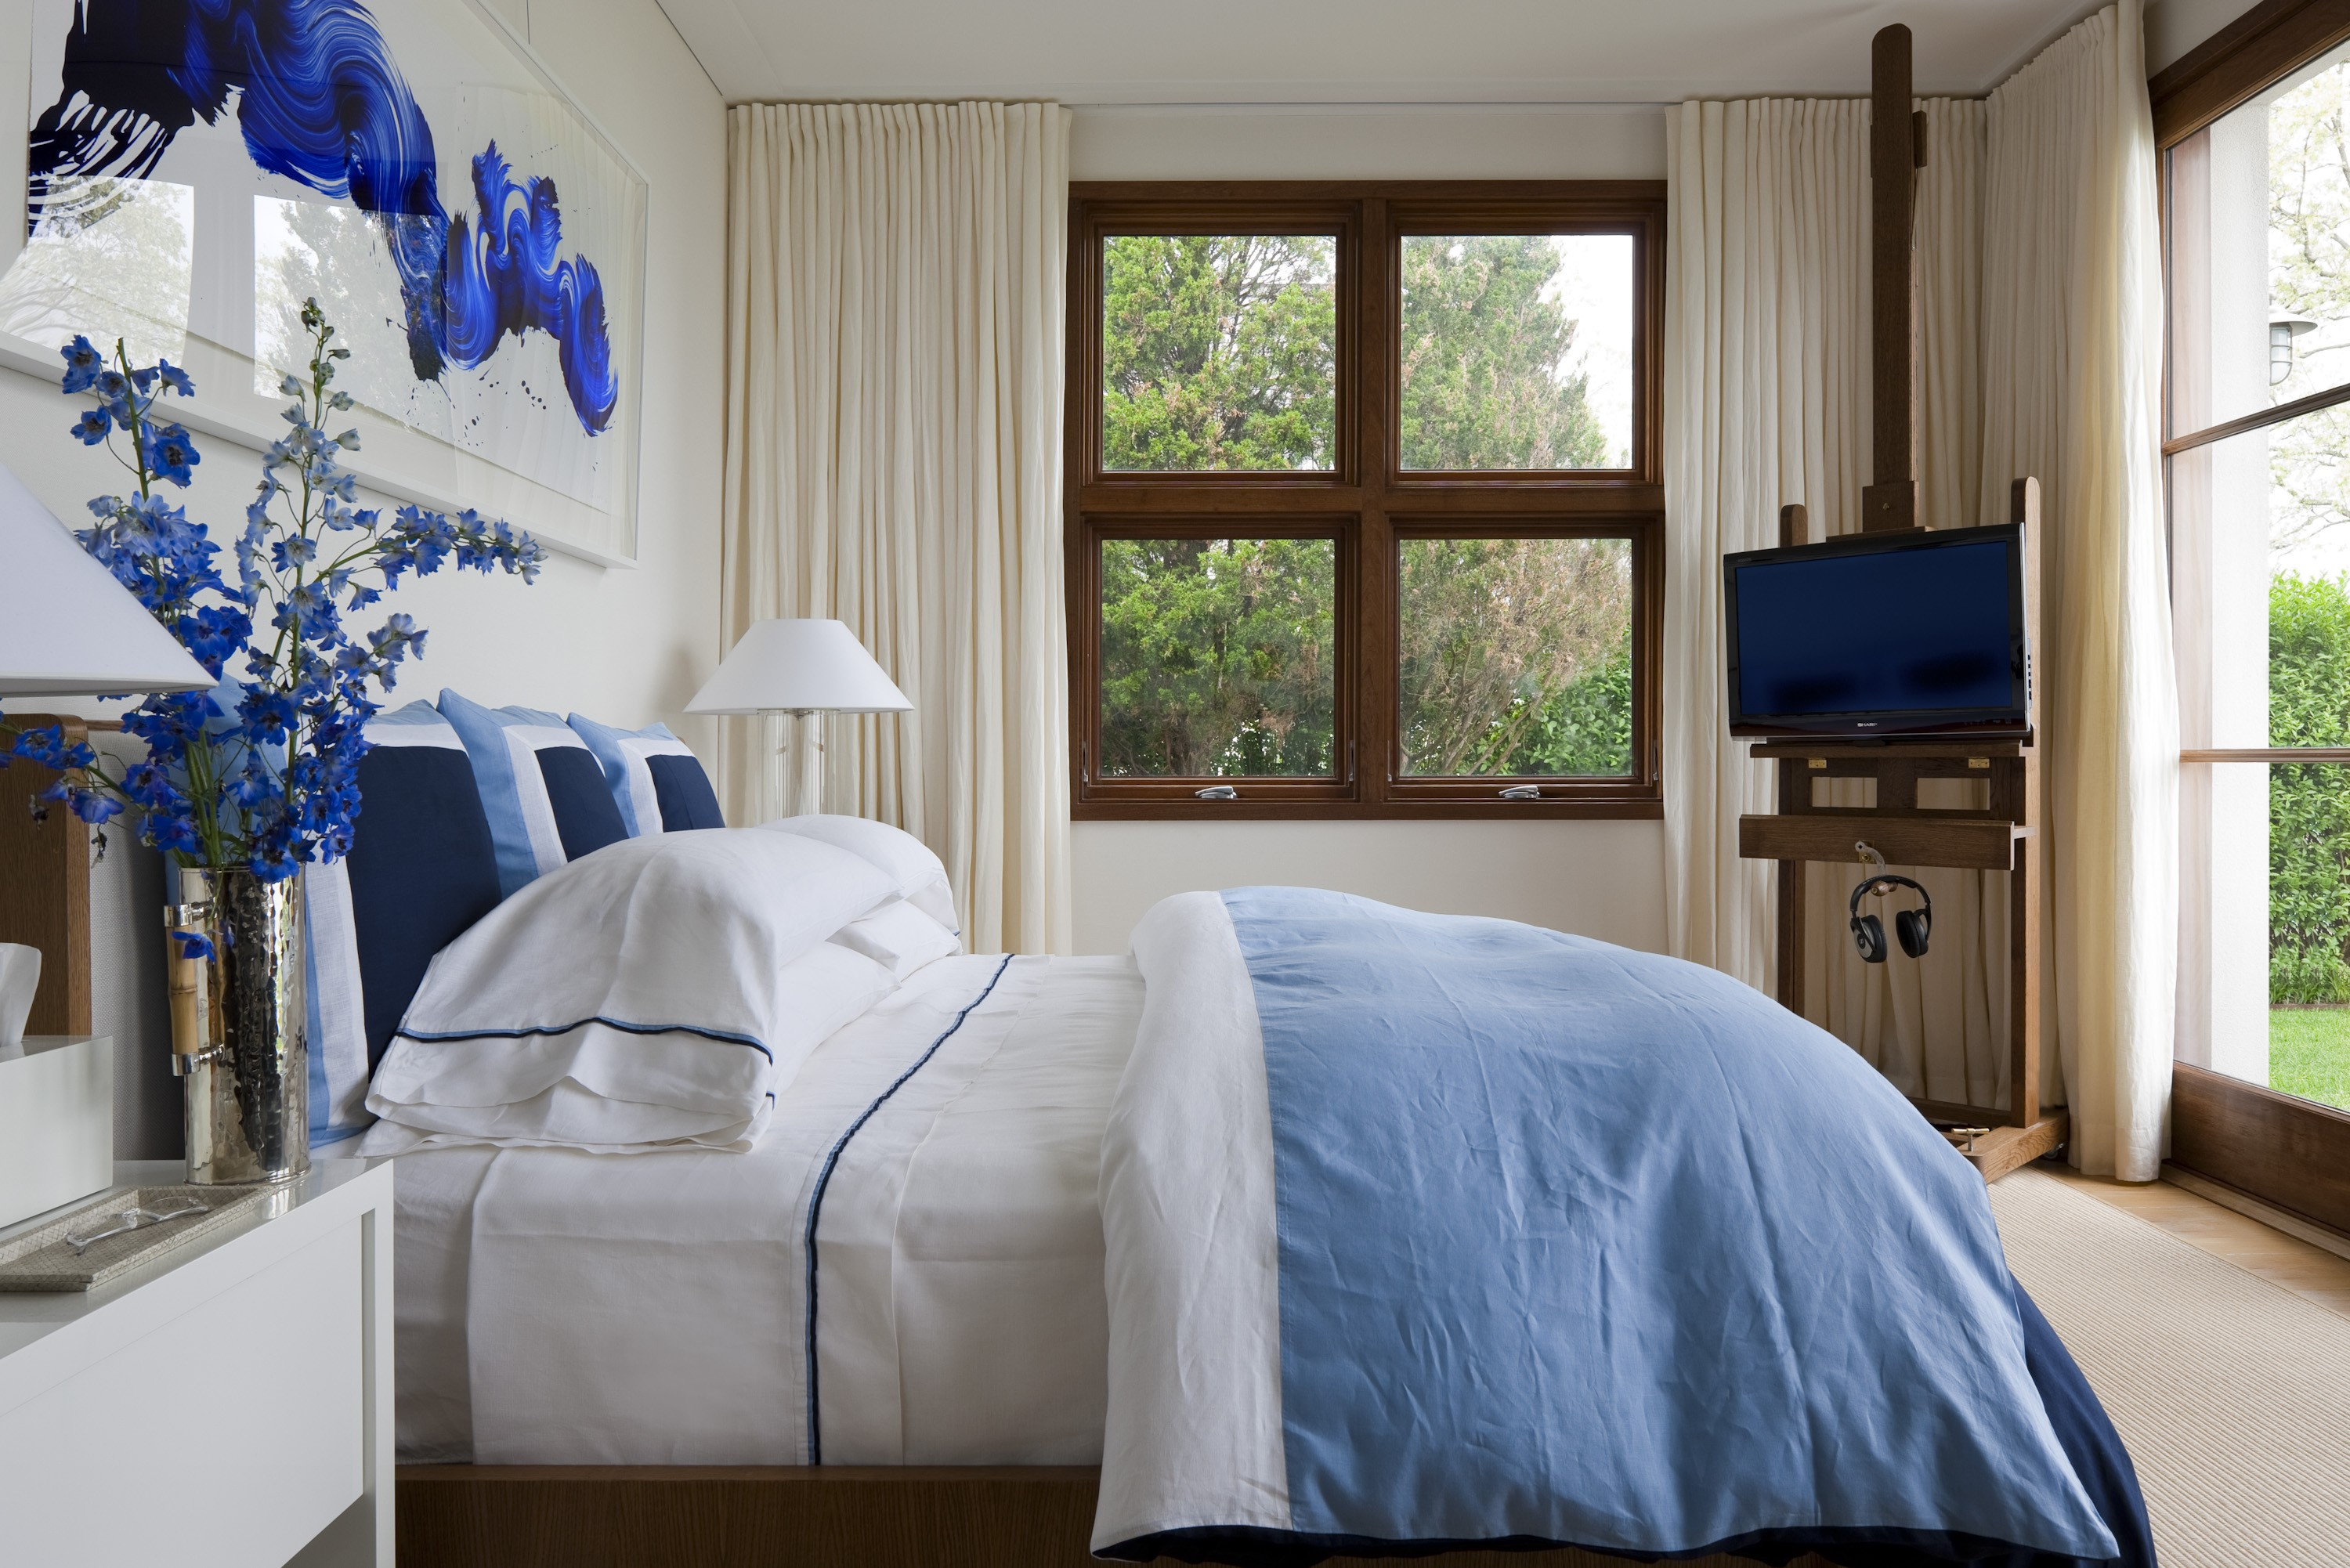 White room with blue pillows and blue artwork